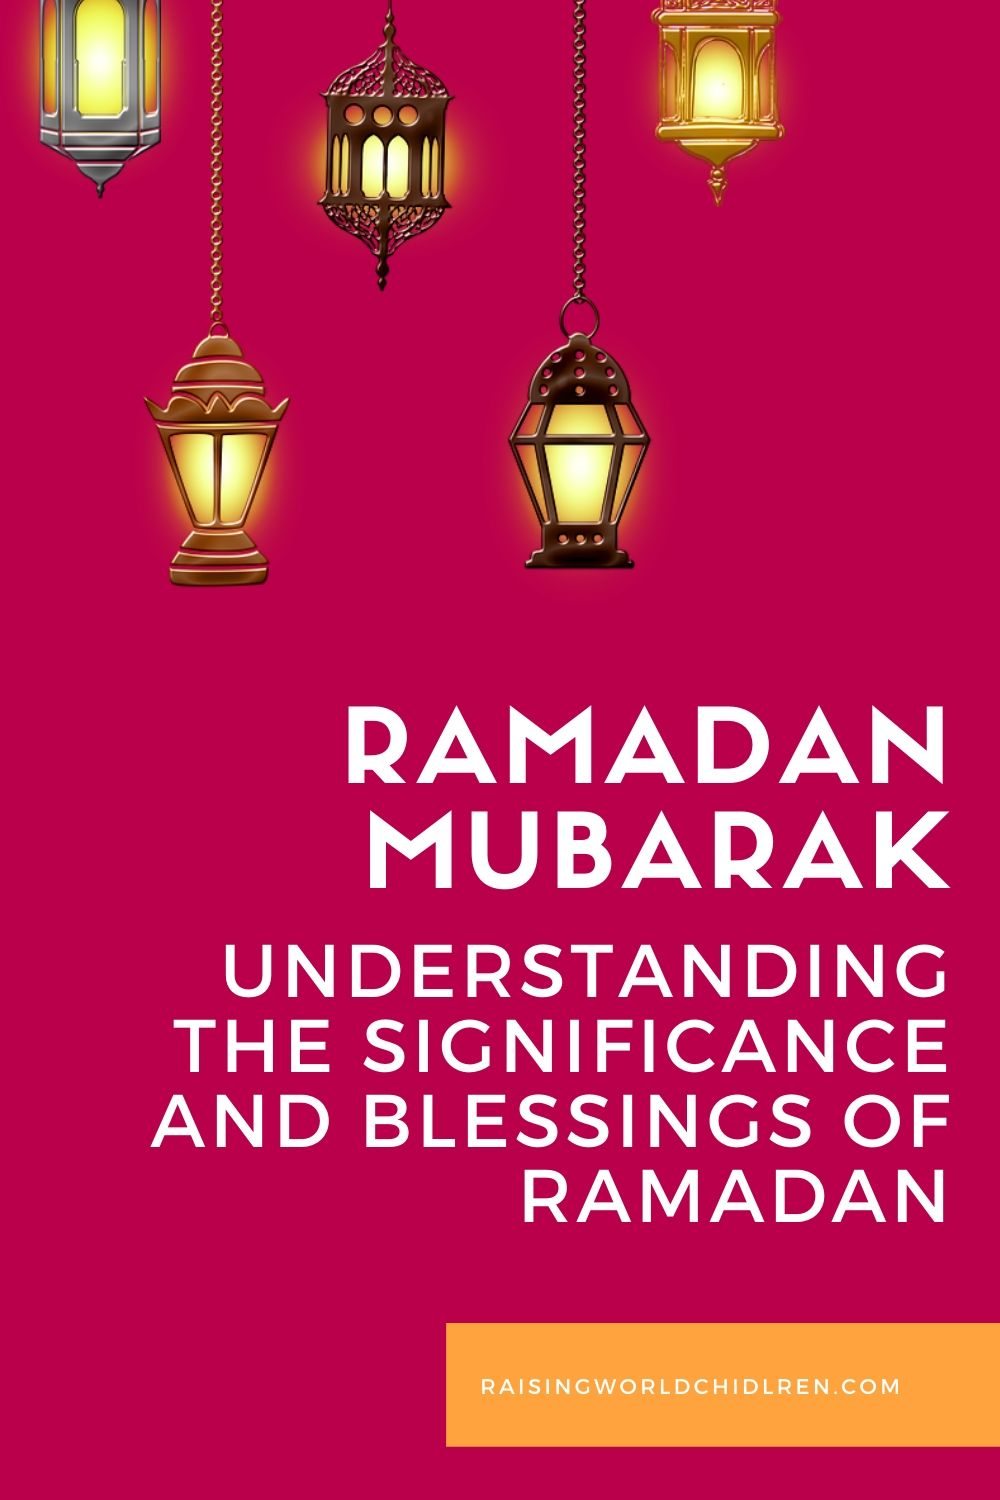 Understanding the Significance and Blessings of Ramadan